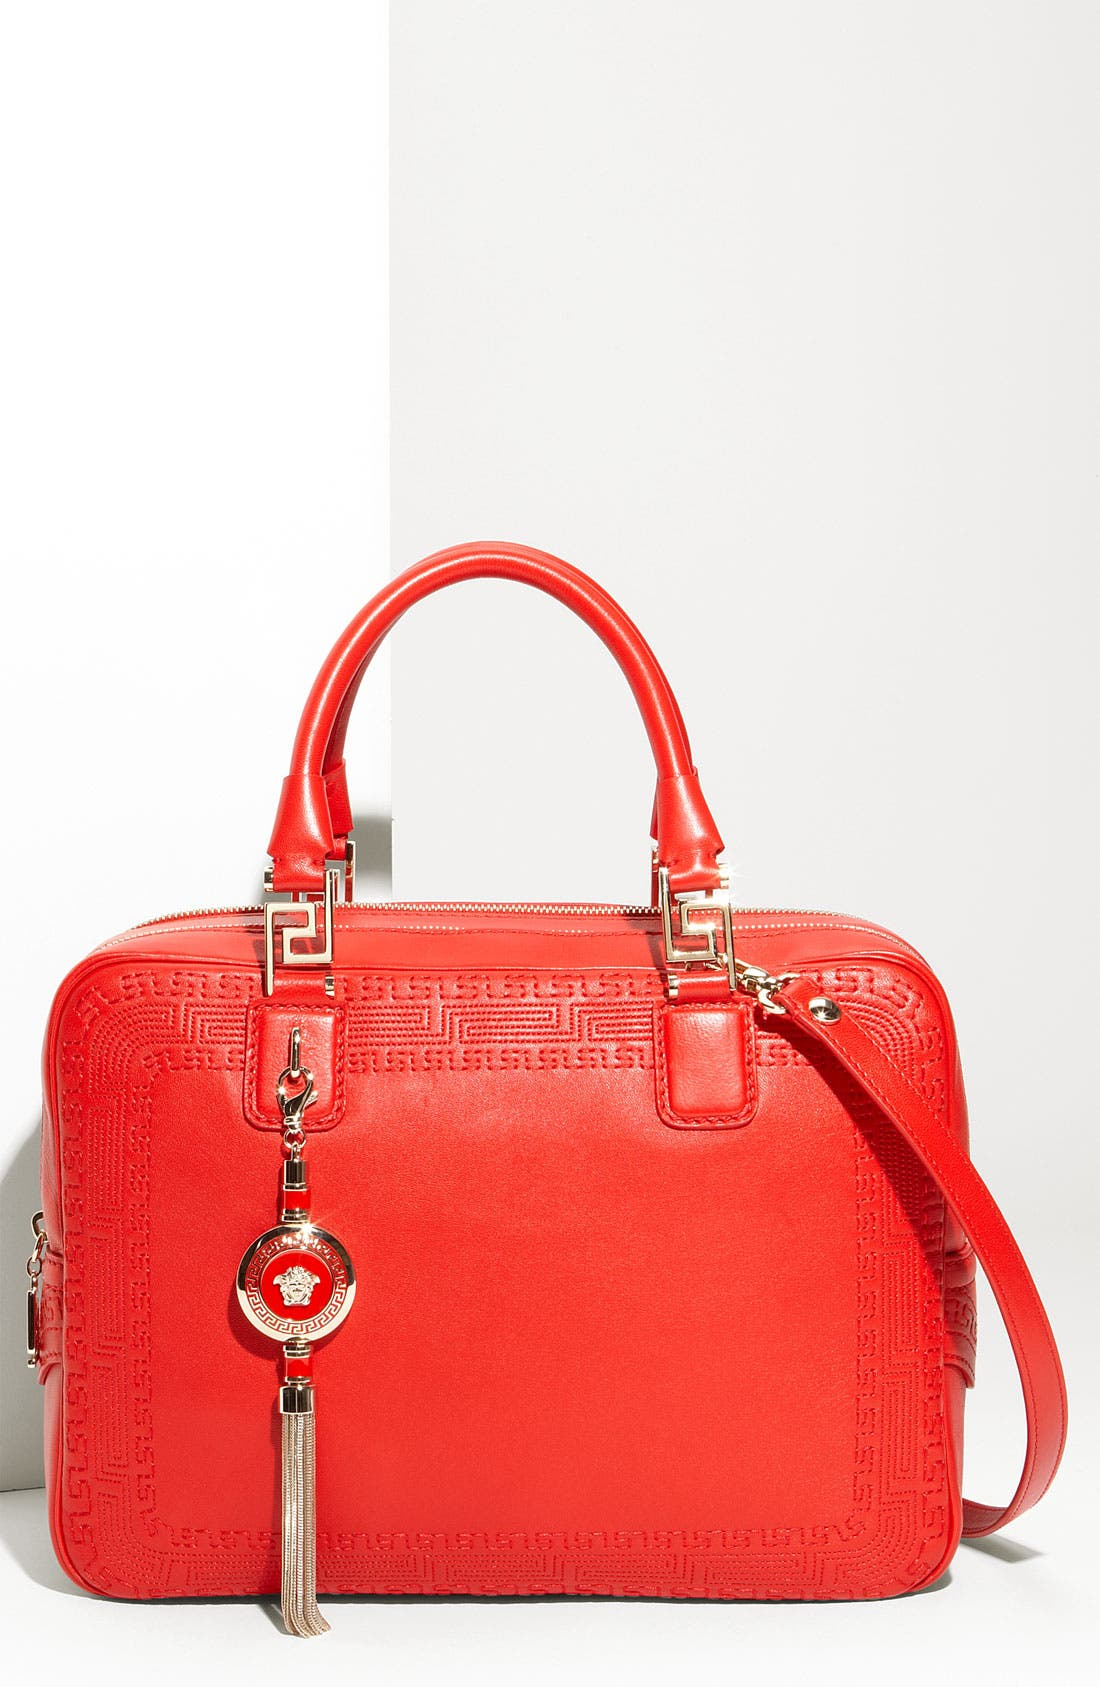 Main Image - Versace Leather Satchel